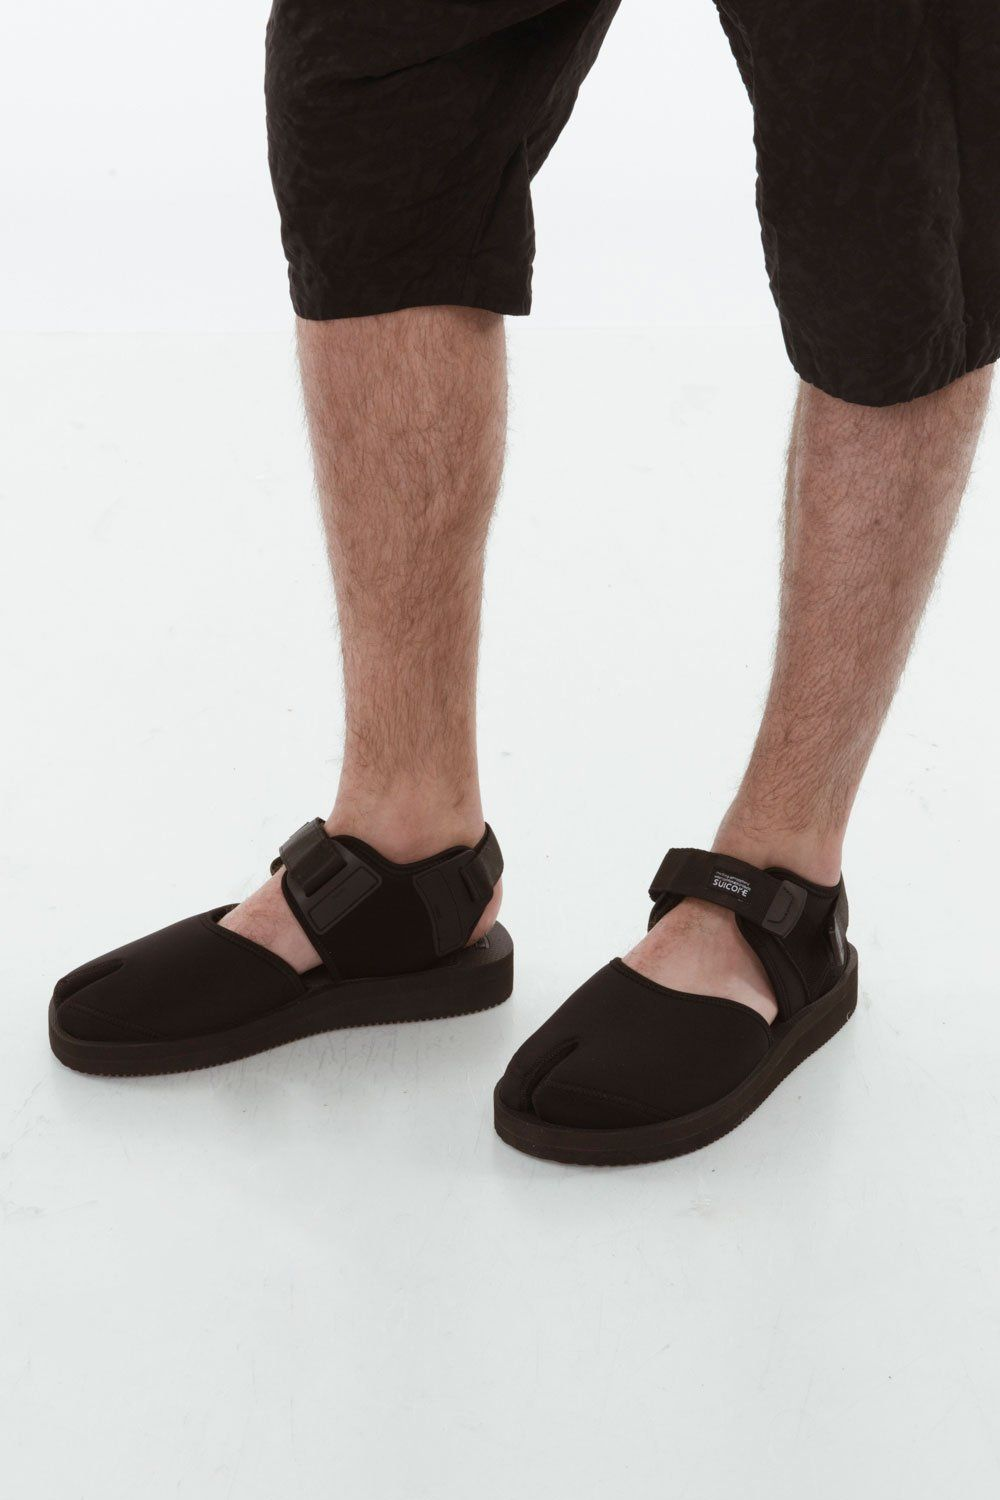 d936fedd35c8 SUICOKE BITA-V  215.00 DESCRIPTION BITA-V in black by Suicoke. Round tabi  sandal with adjustable webbing velcro straps. Tonal rubber footbed and  treaded ...